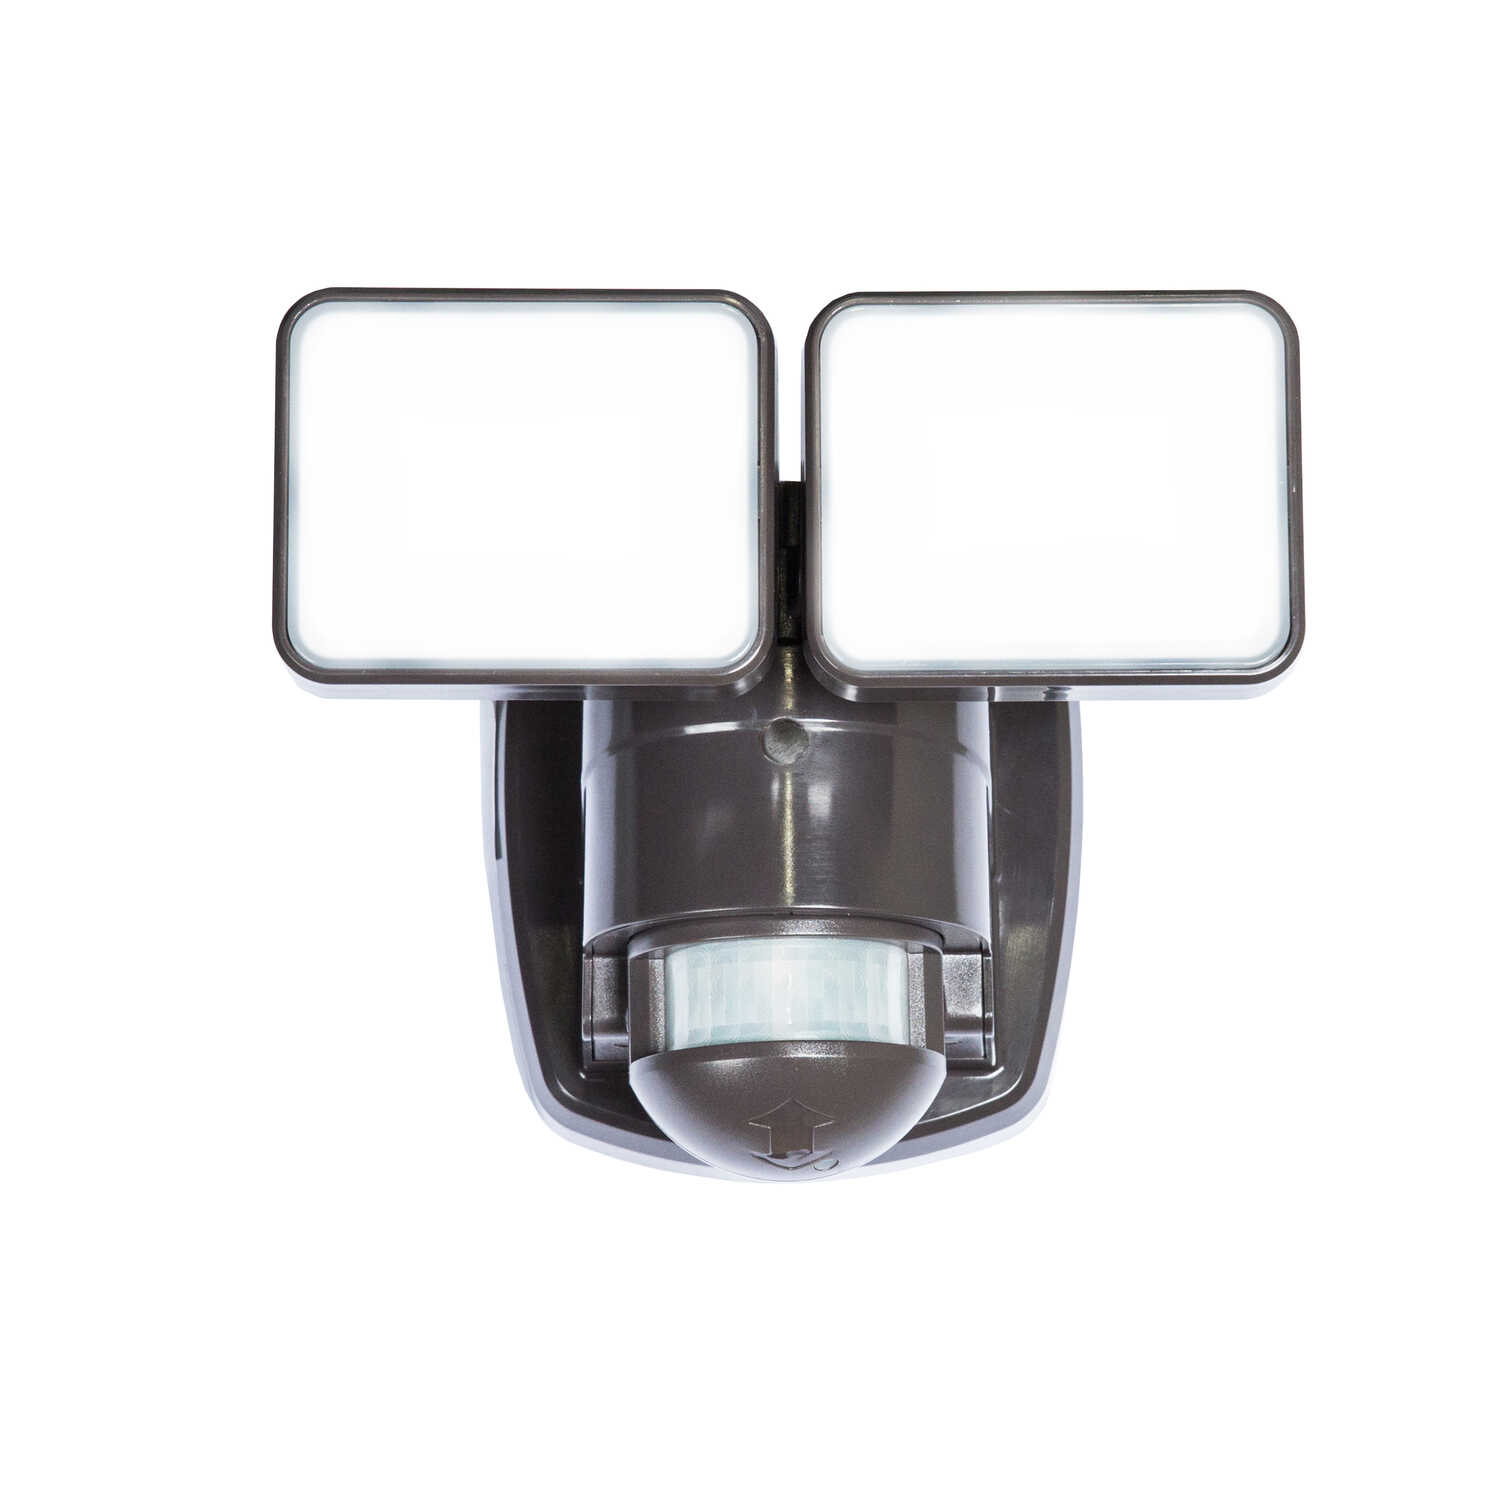 Heath Zenith  LED  Bronze  Security Wall Light  Hardwired  Motion-Sensing